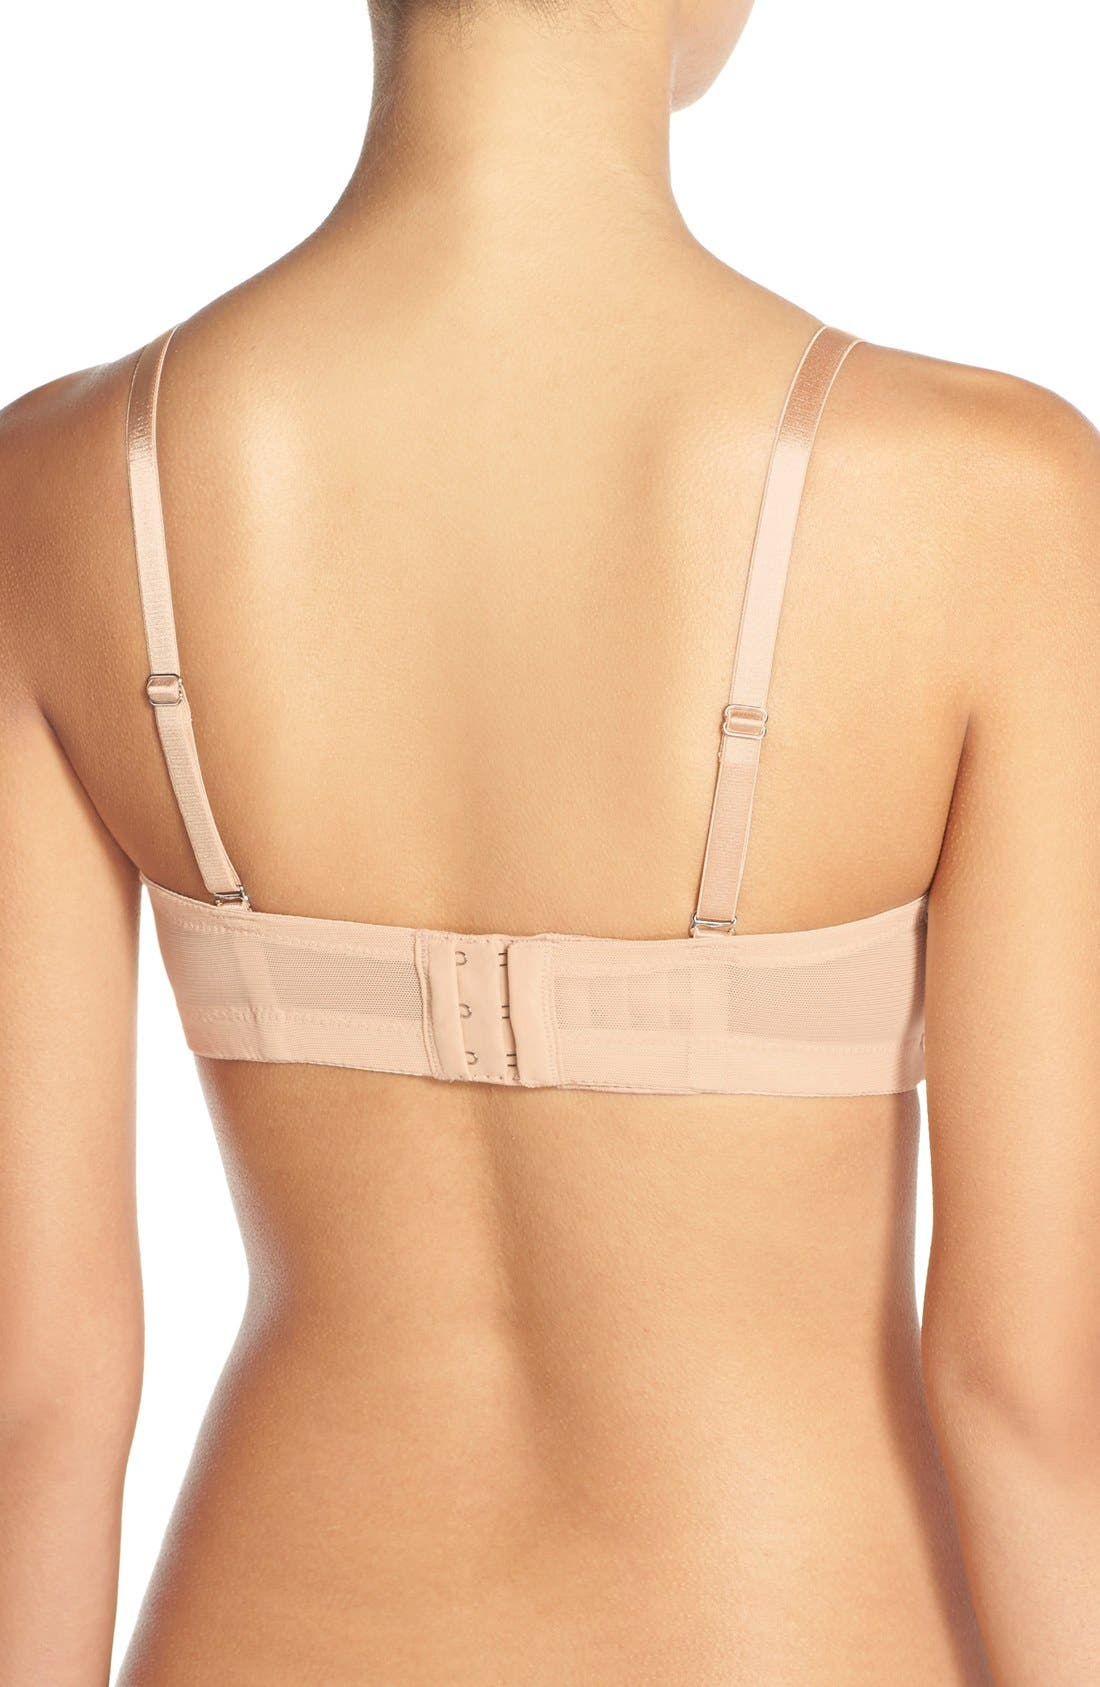 Forever Yours Convertible Underwire Nursing Bra,                             Alternate thumbnail 2, color,                             NUDE